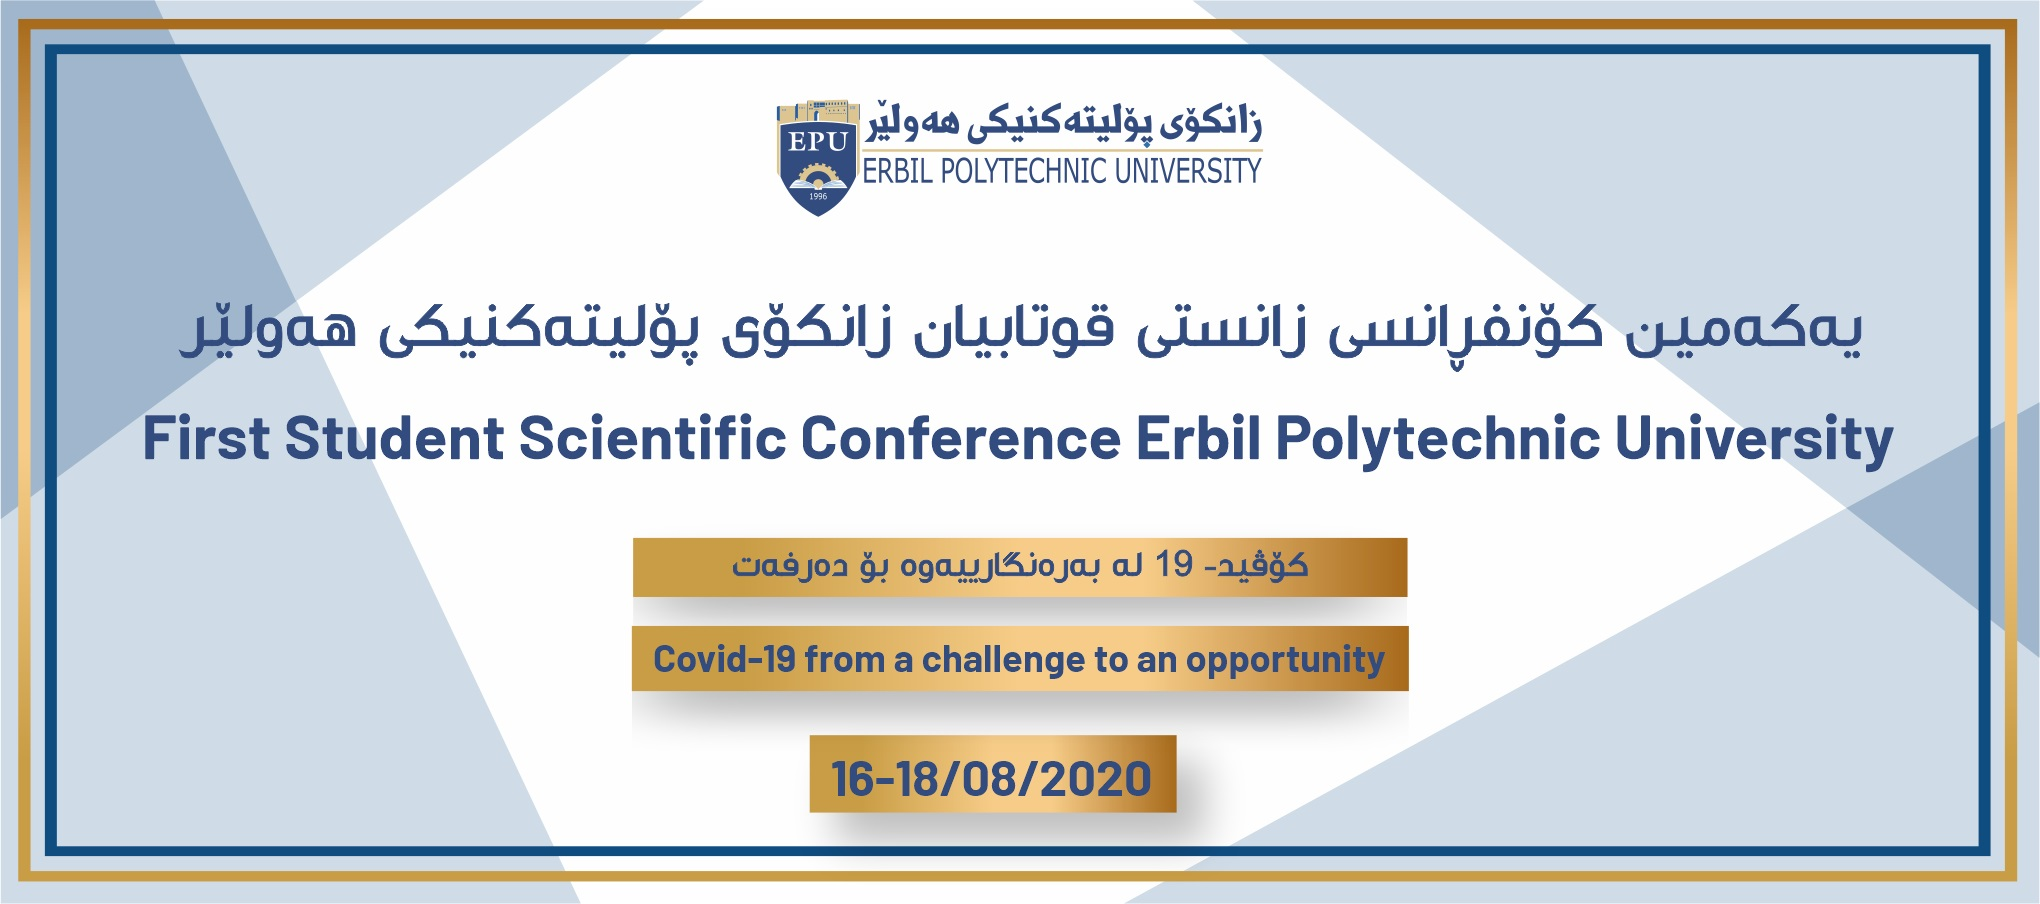 Erbil Polytechnic University Holds the first Scientific Conference of the Students at 16-18th August 2020 Online